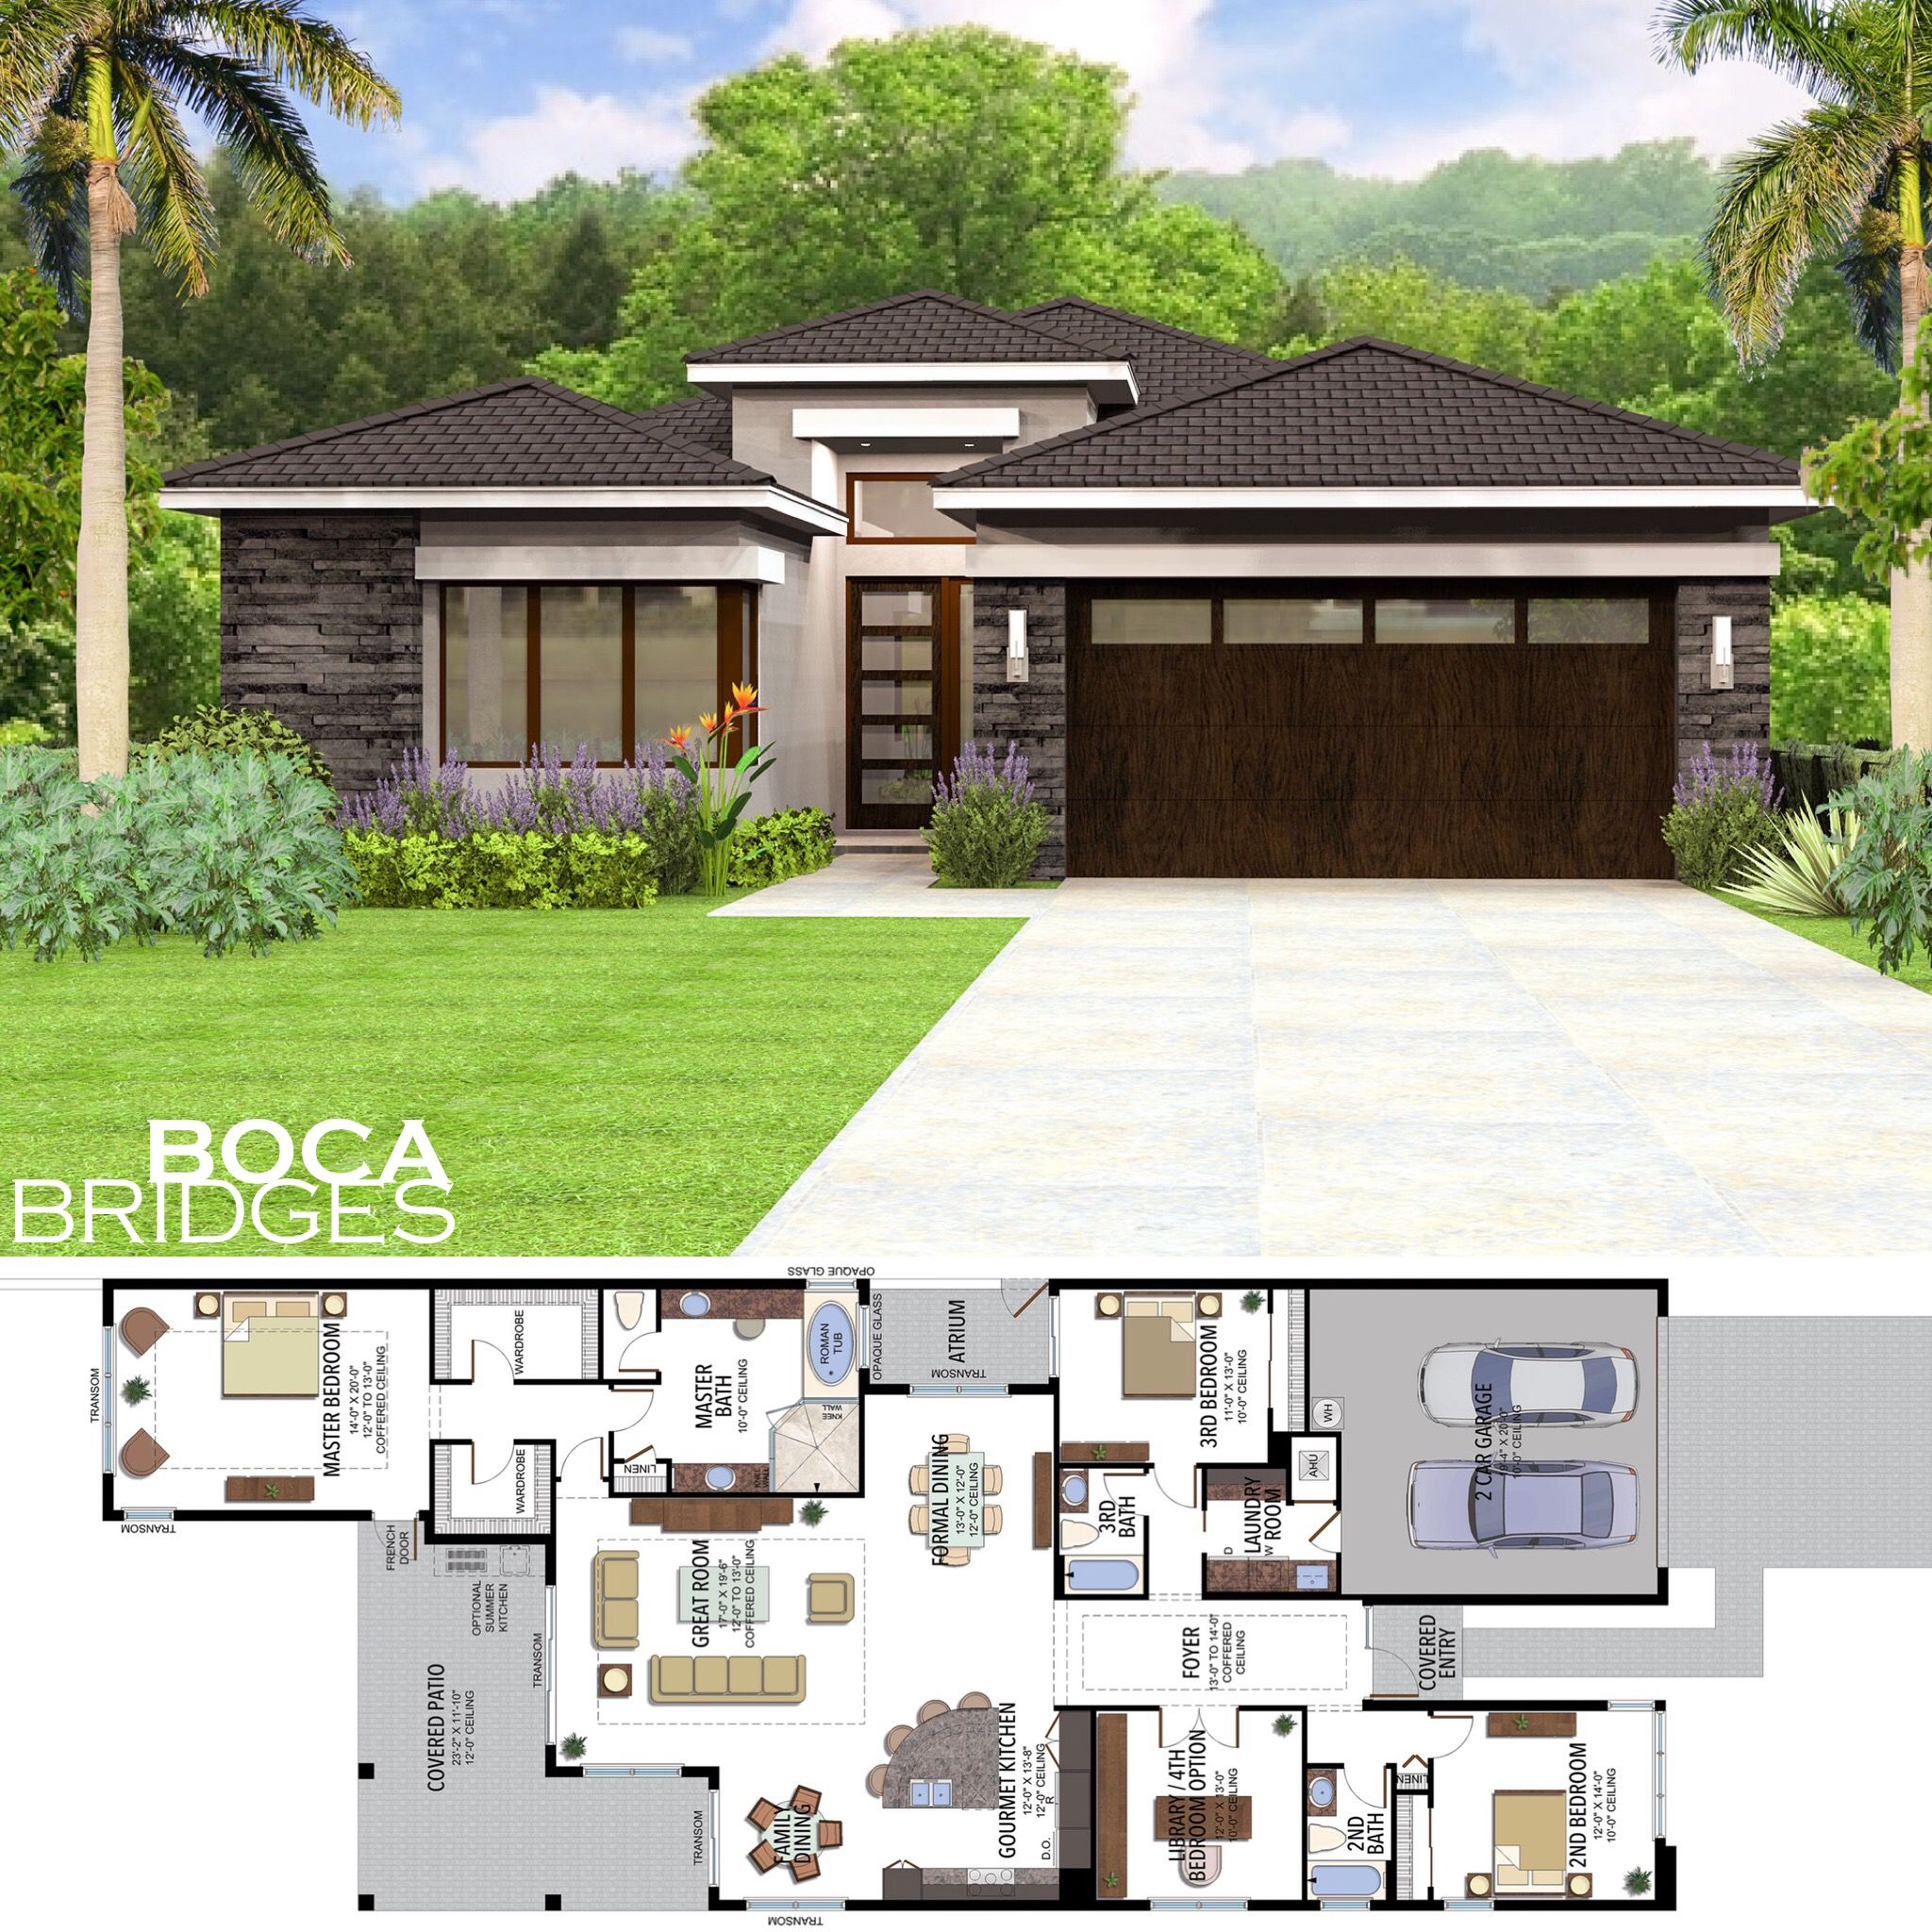 Now Available New Contemporary Home Designs At Bocabridges From The 800 S Follow The Link O House Plan Gallery House Designs Exterior Beautiful House Plans